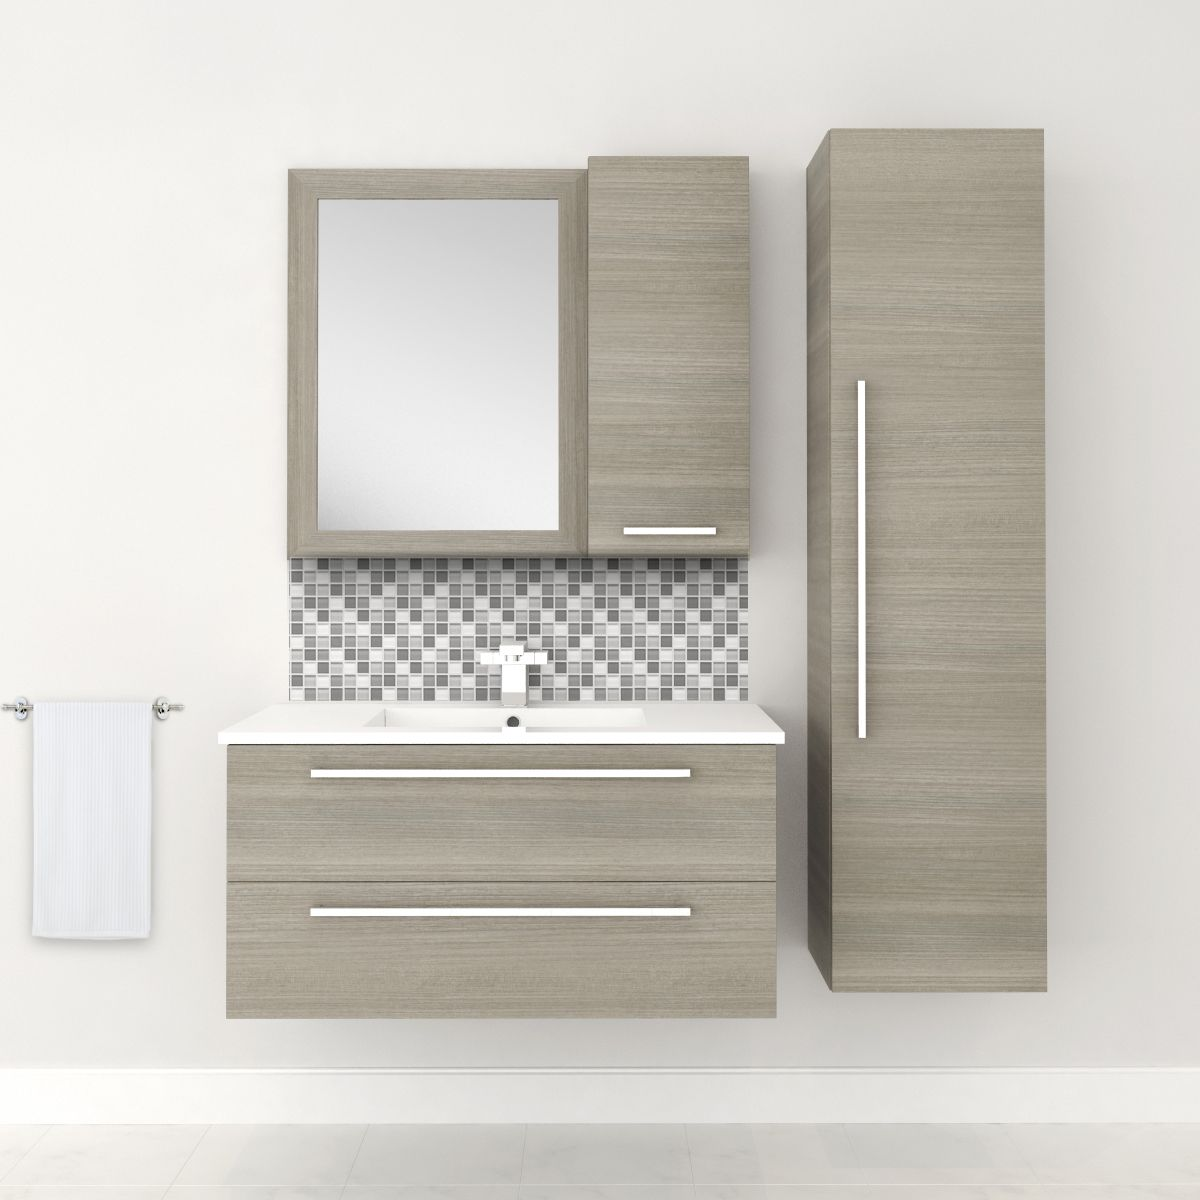 gallery trends elegant industry with share the from show amp to of article regard kitchen cutler and bath